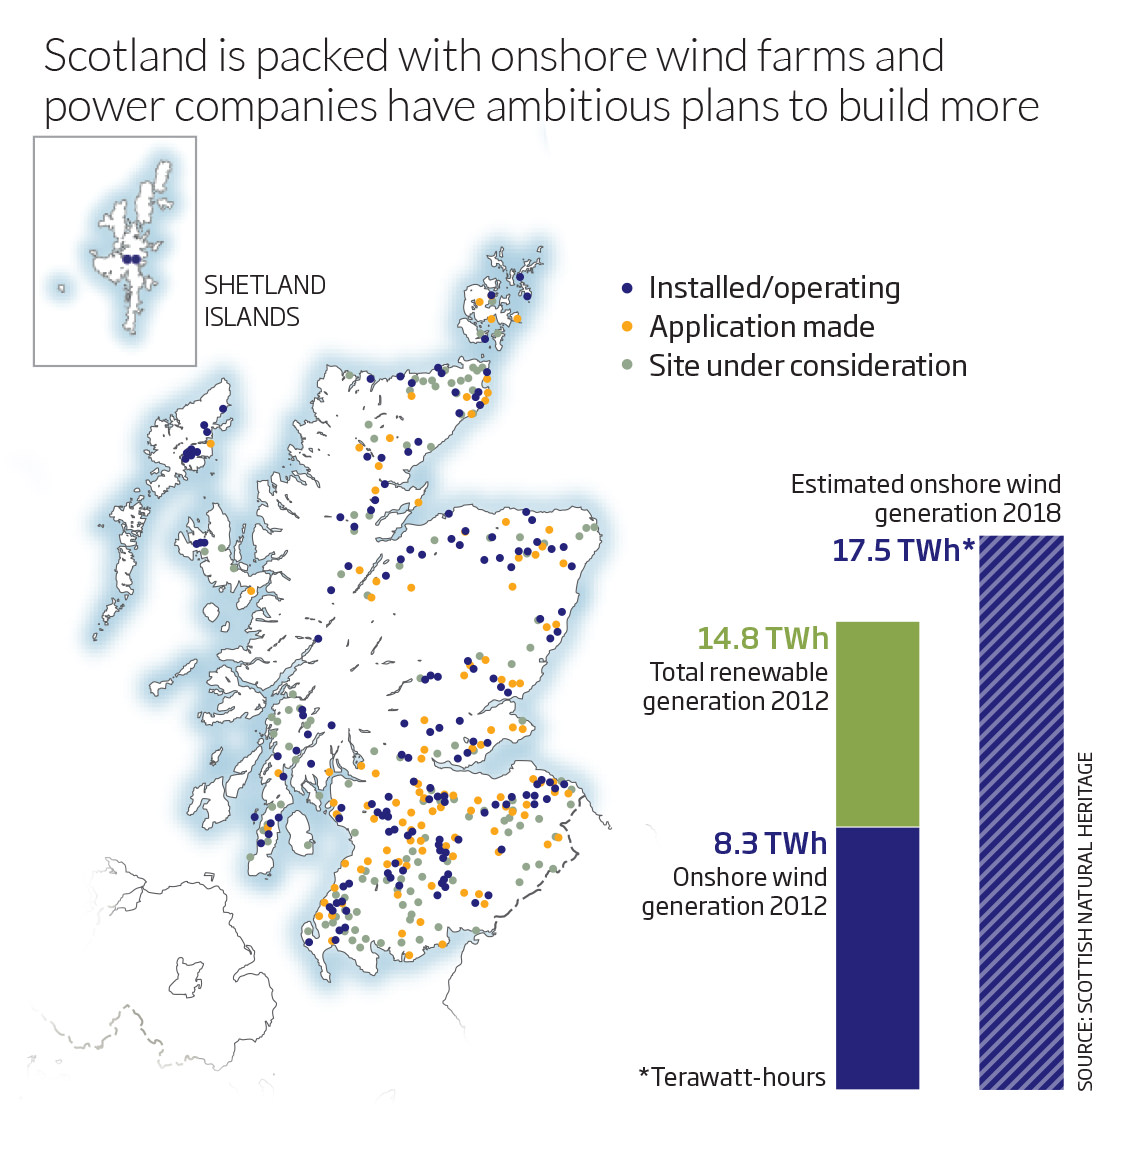 Scotland is packed with onshore wind farms and power companies have ambitious plans to build more